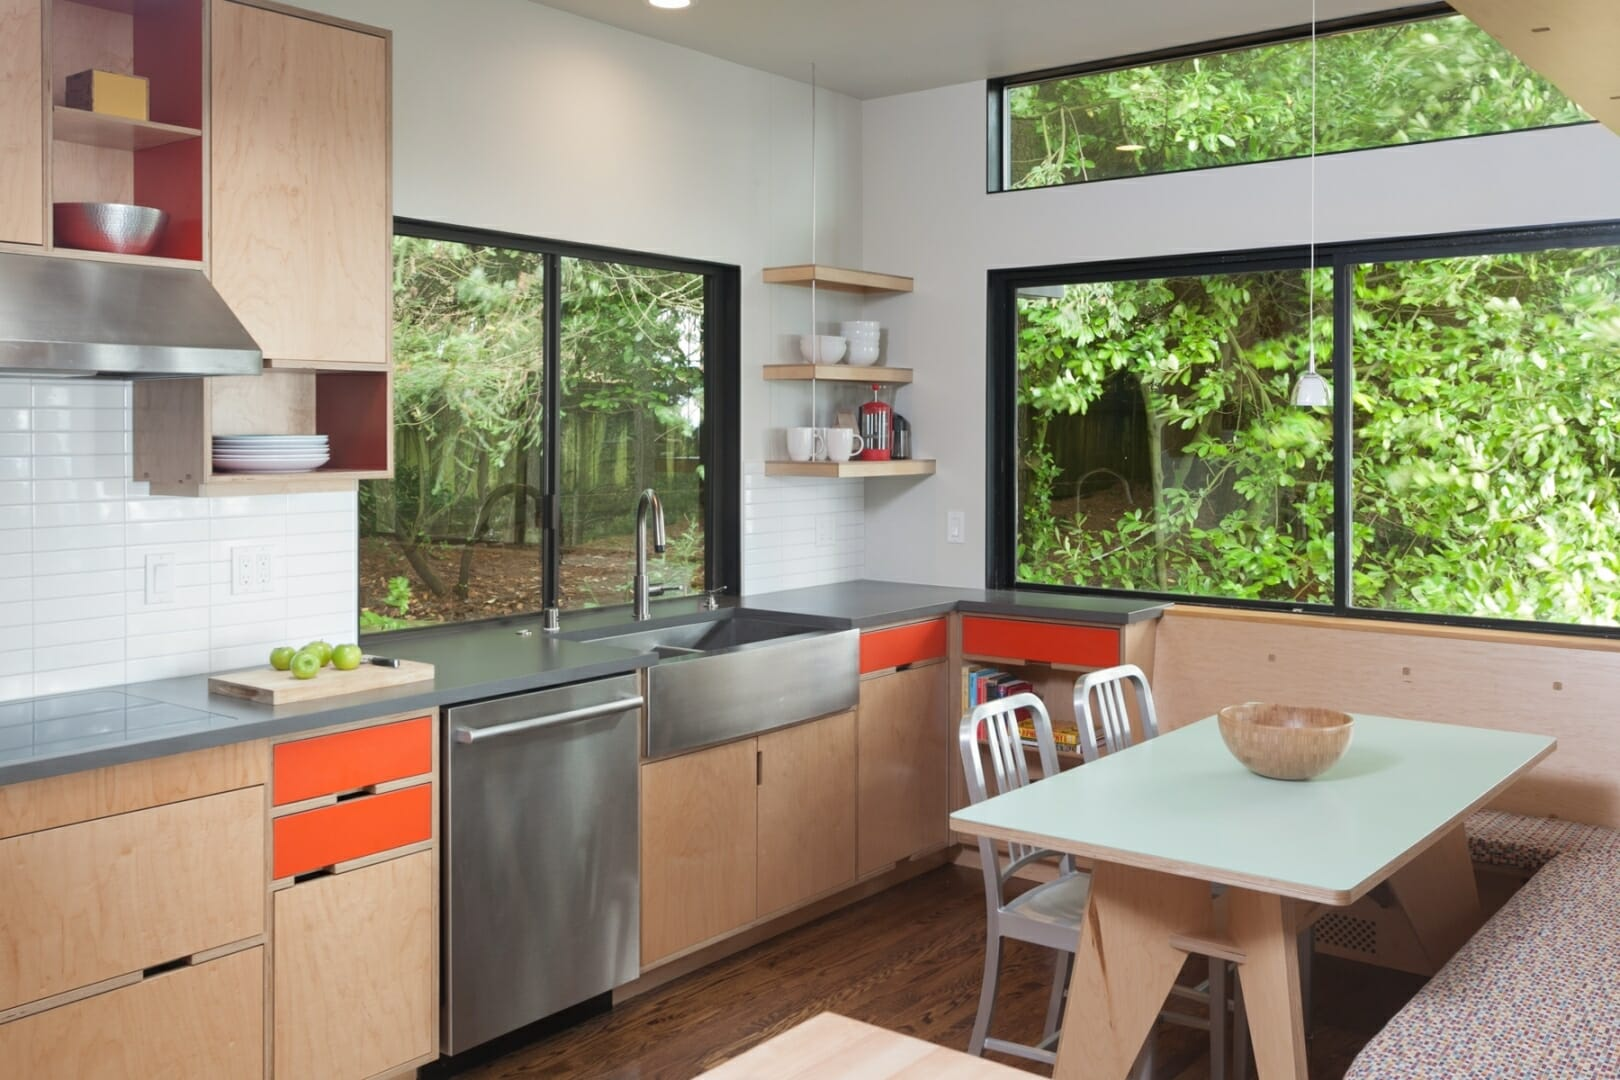 Kitchen Refresh 6 Ways To Refresh Your Kitchen On A Budget Modernize